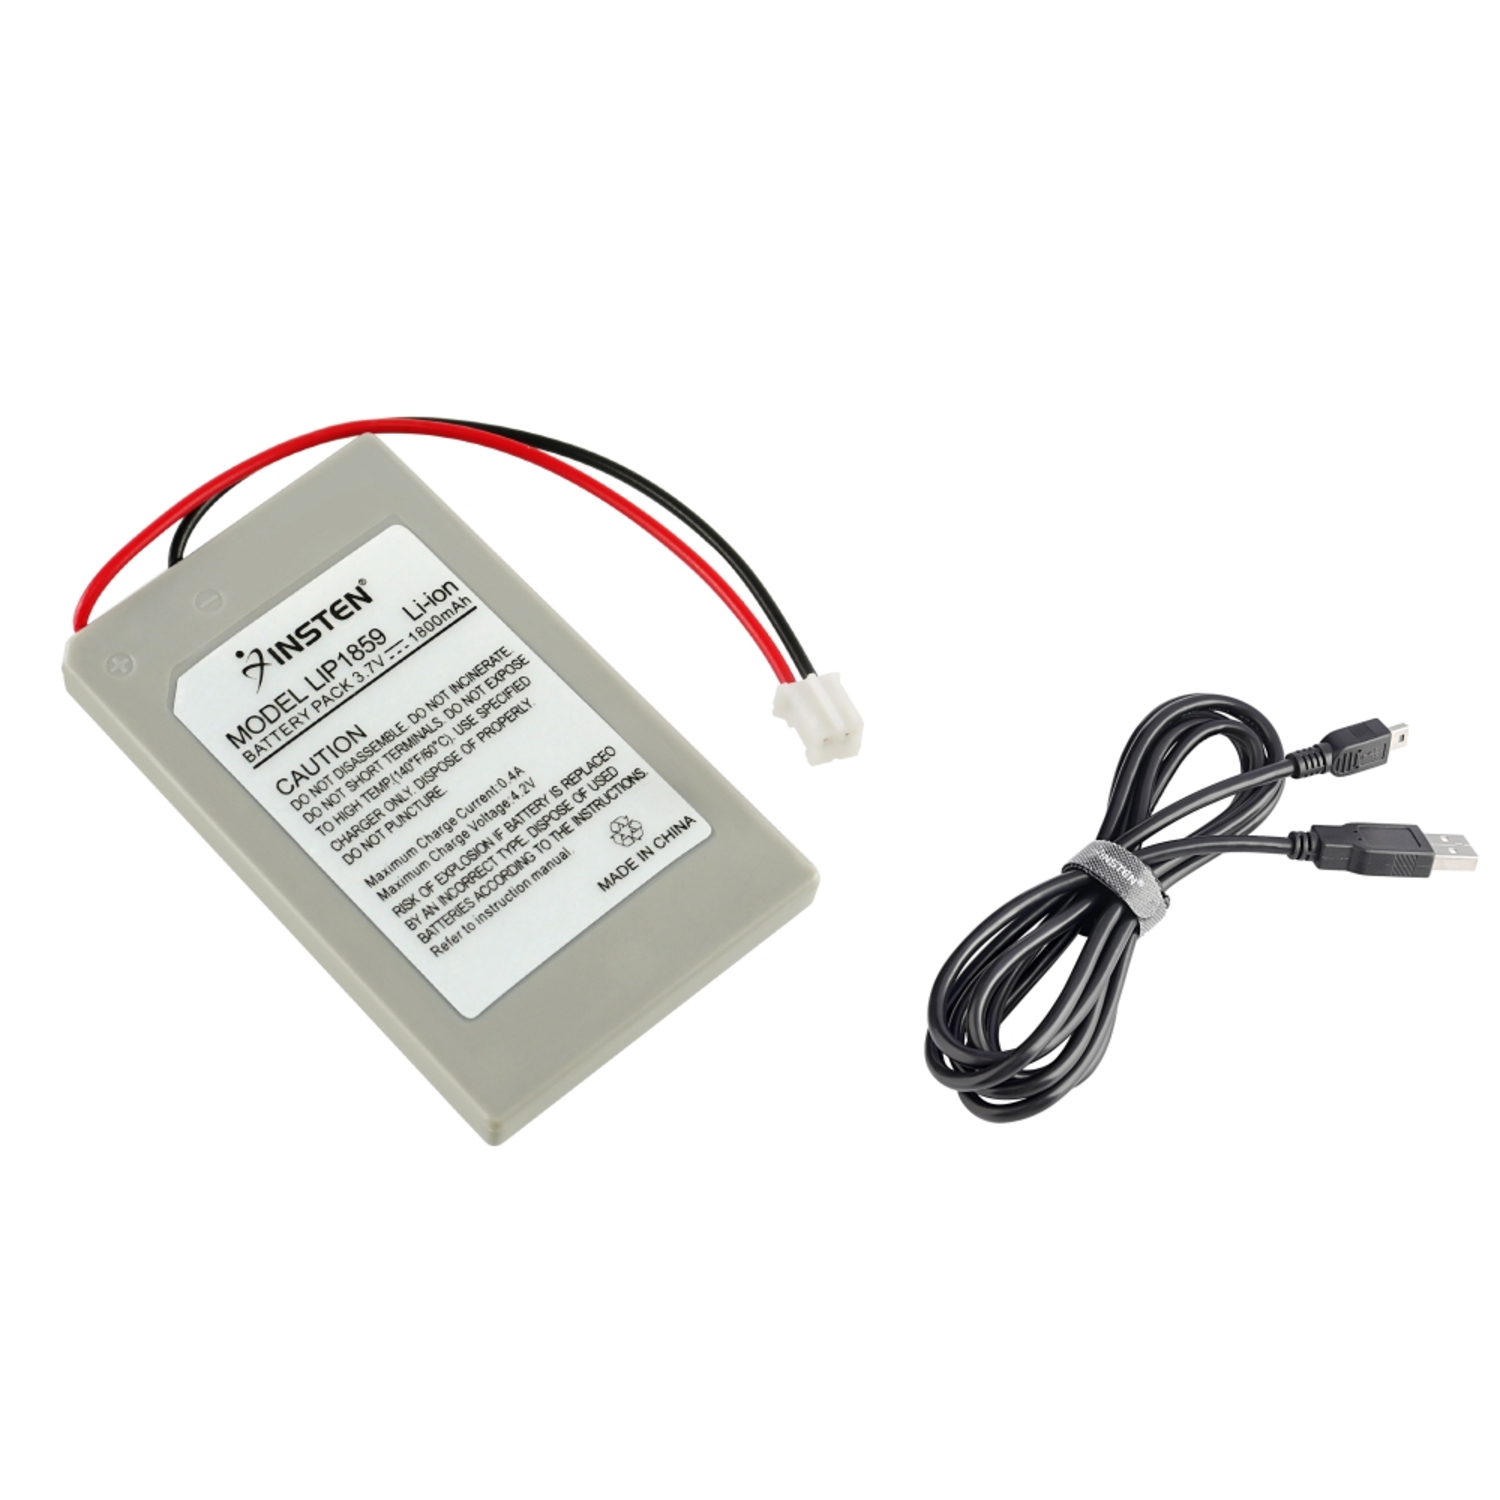 Insten USB Charger Cable + Remote Controller Replacement Battery For Sony PS3 (2-in-1 Accessory Bundle)